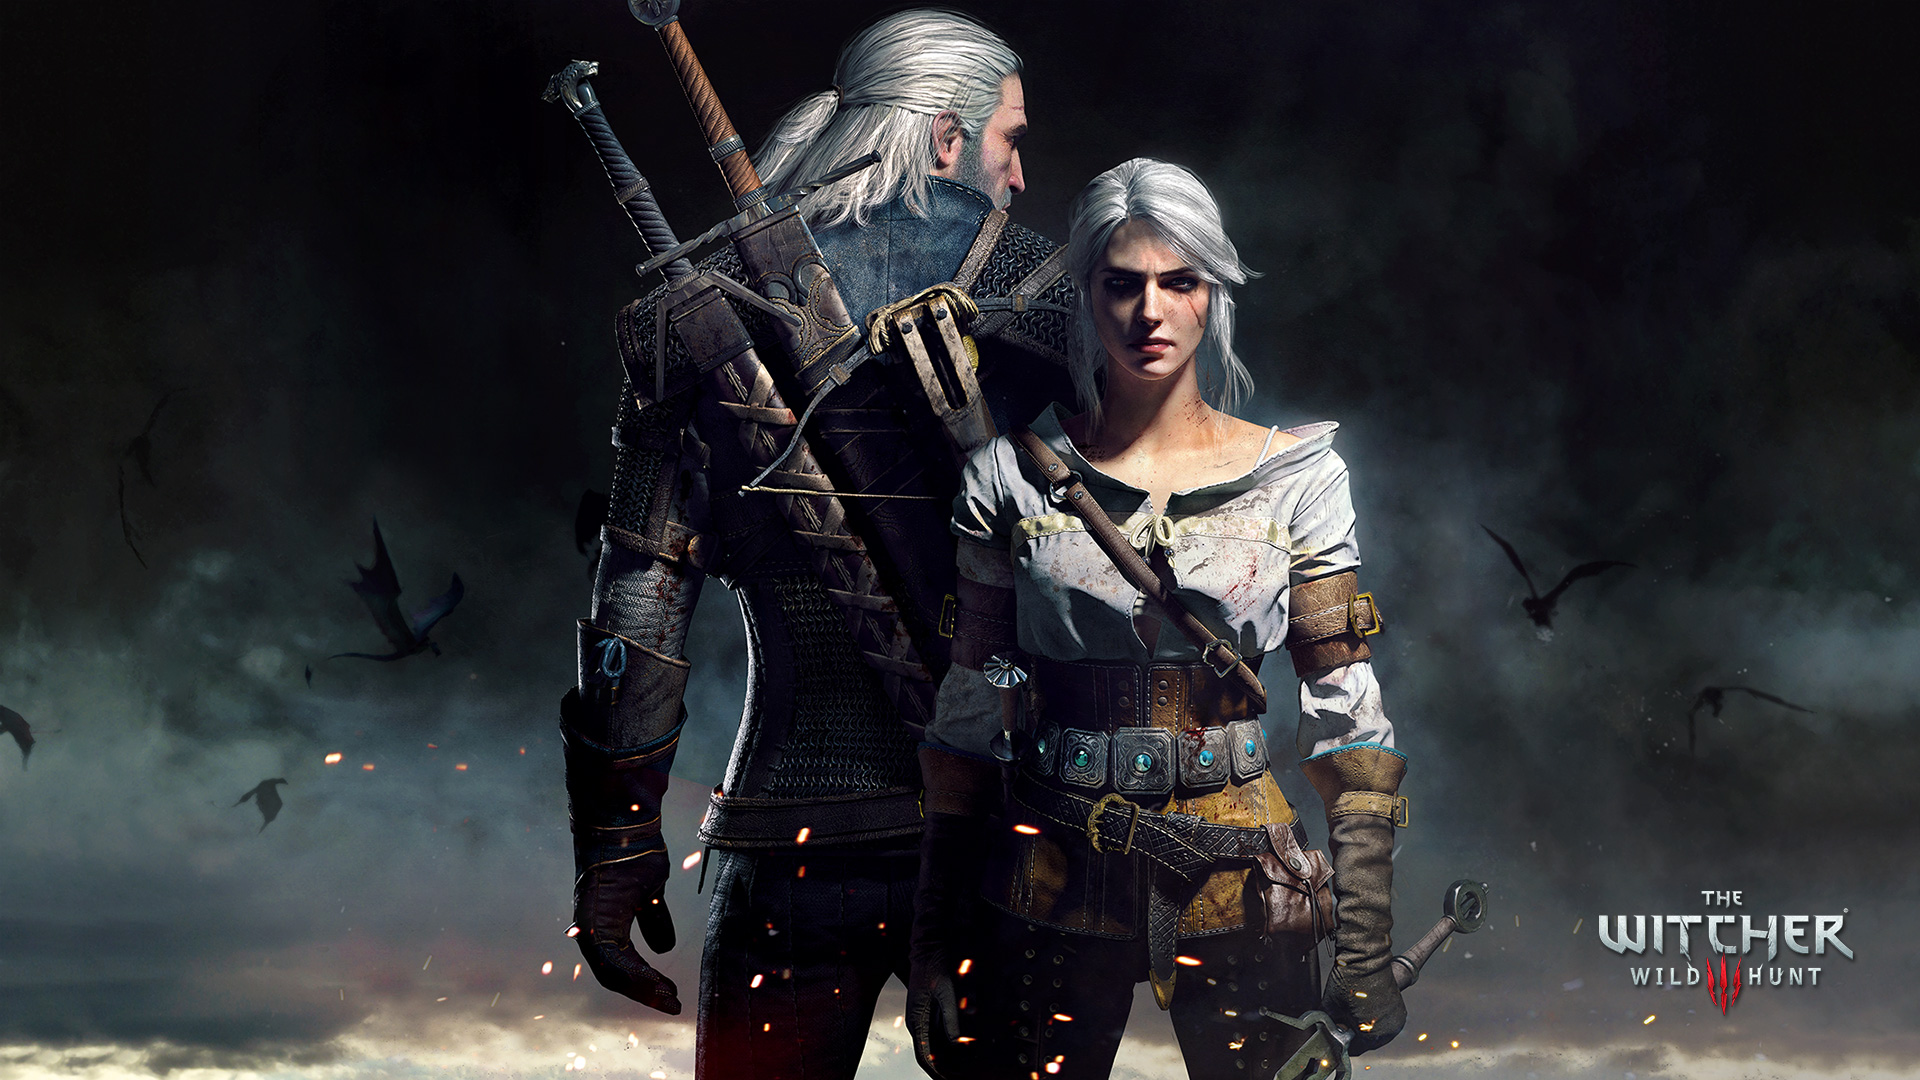 The Witcher 3 - The